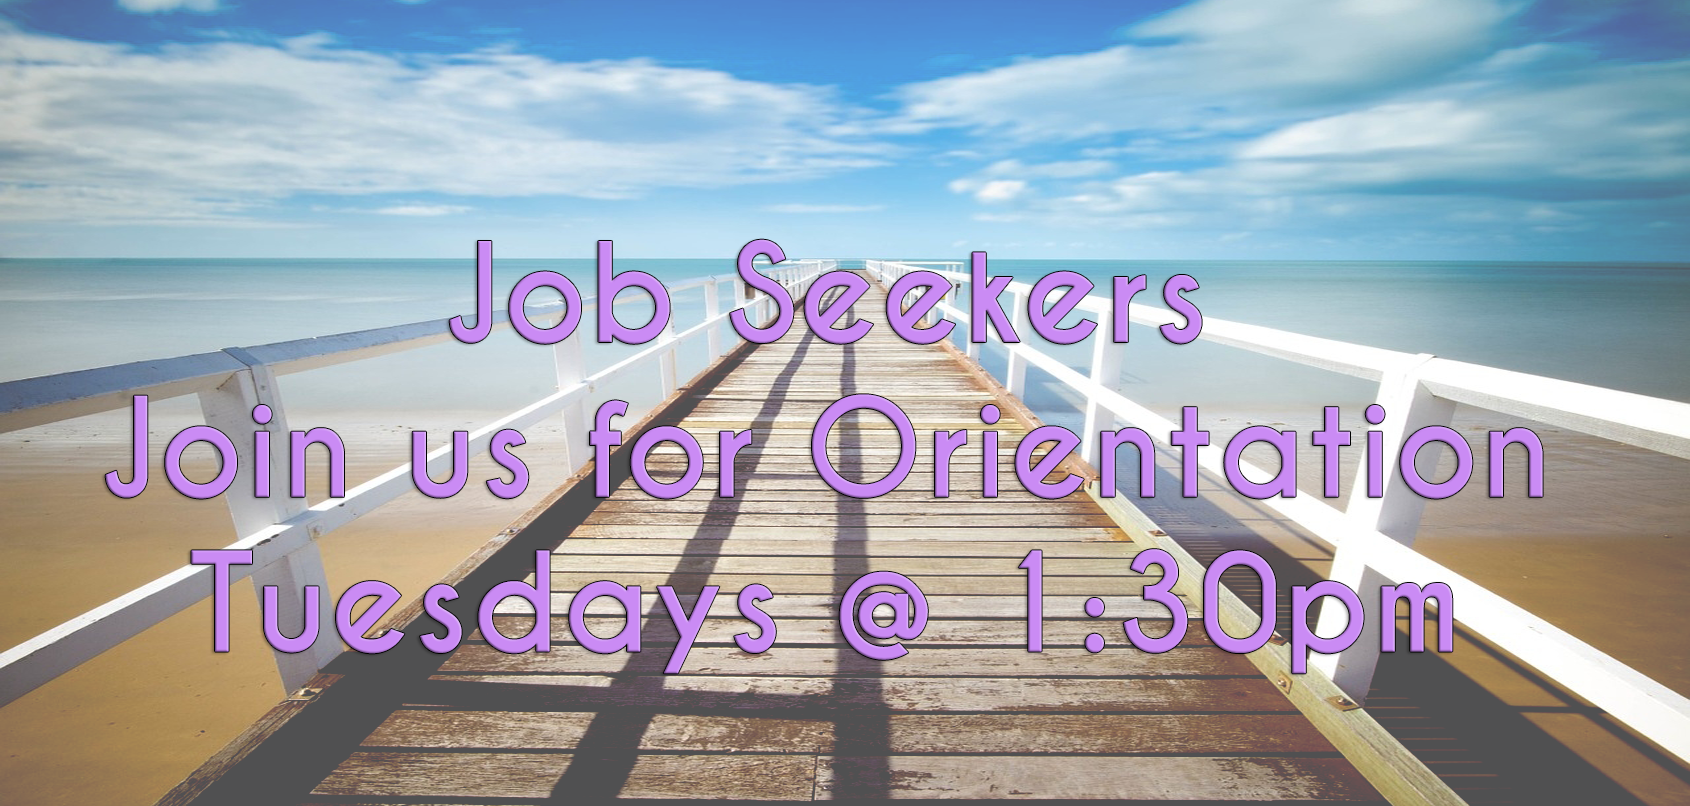 Job Seekers join us for orientation on tuesday @ 1:30